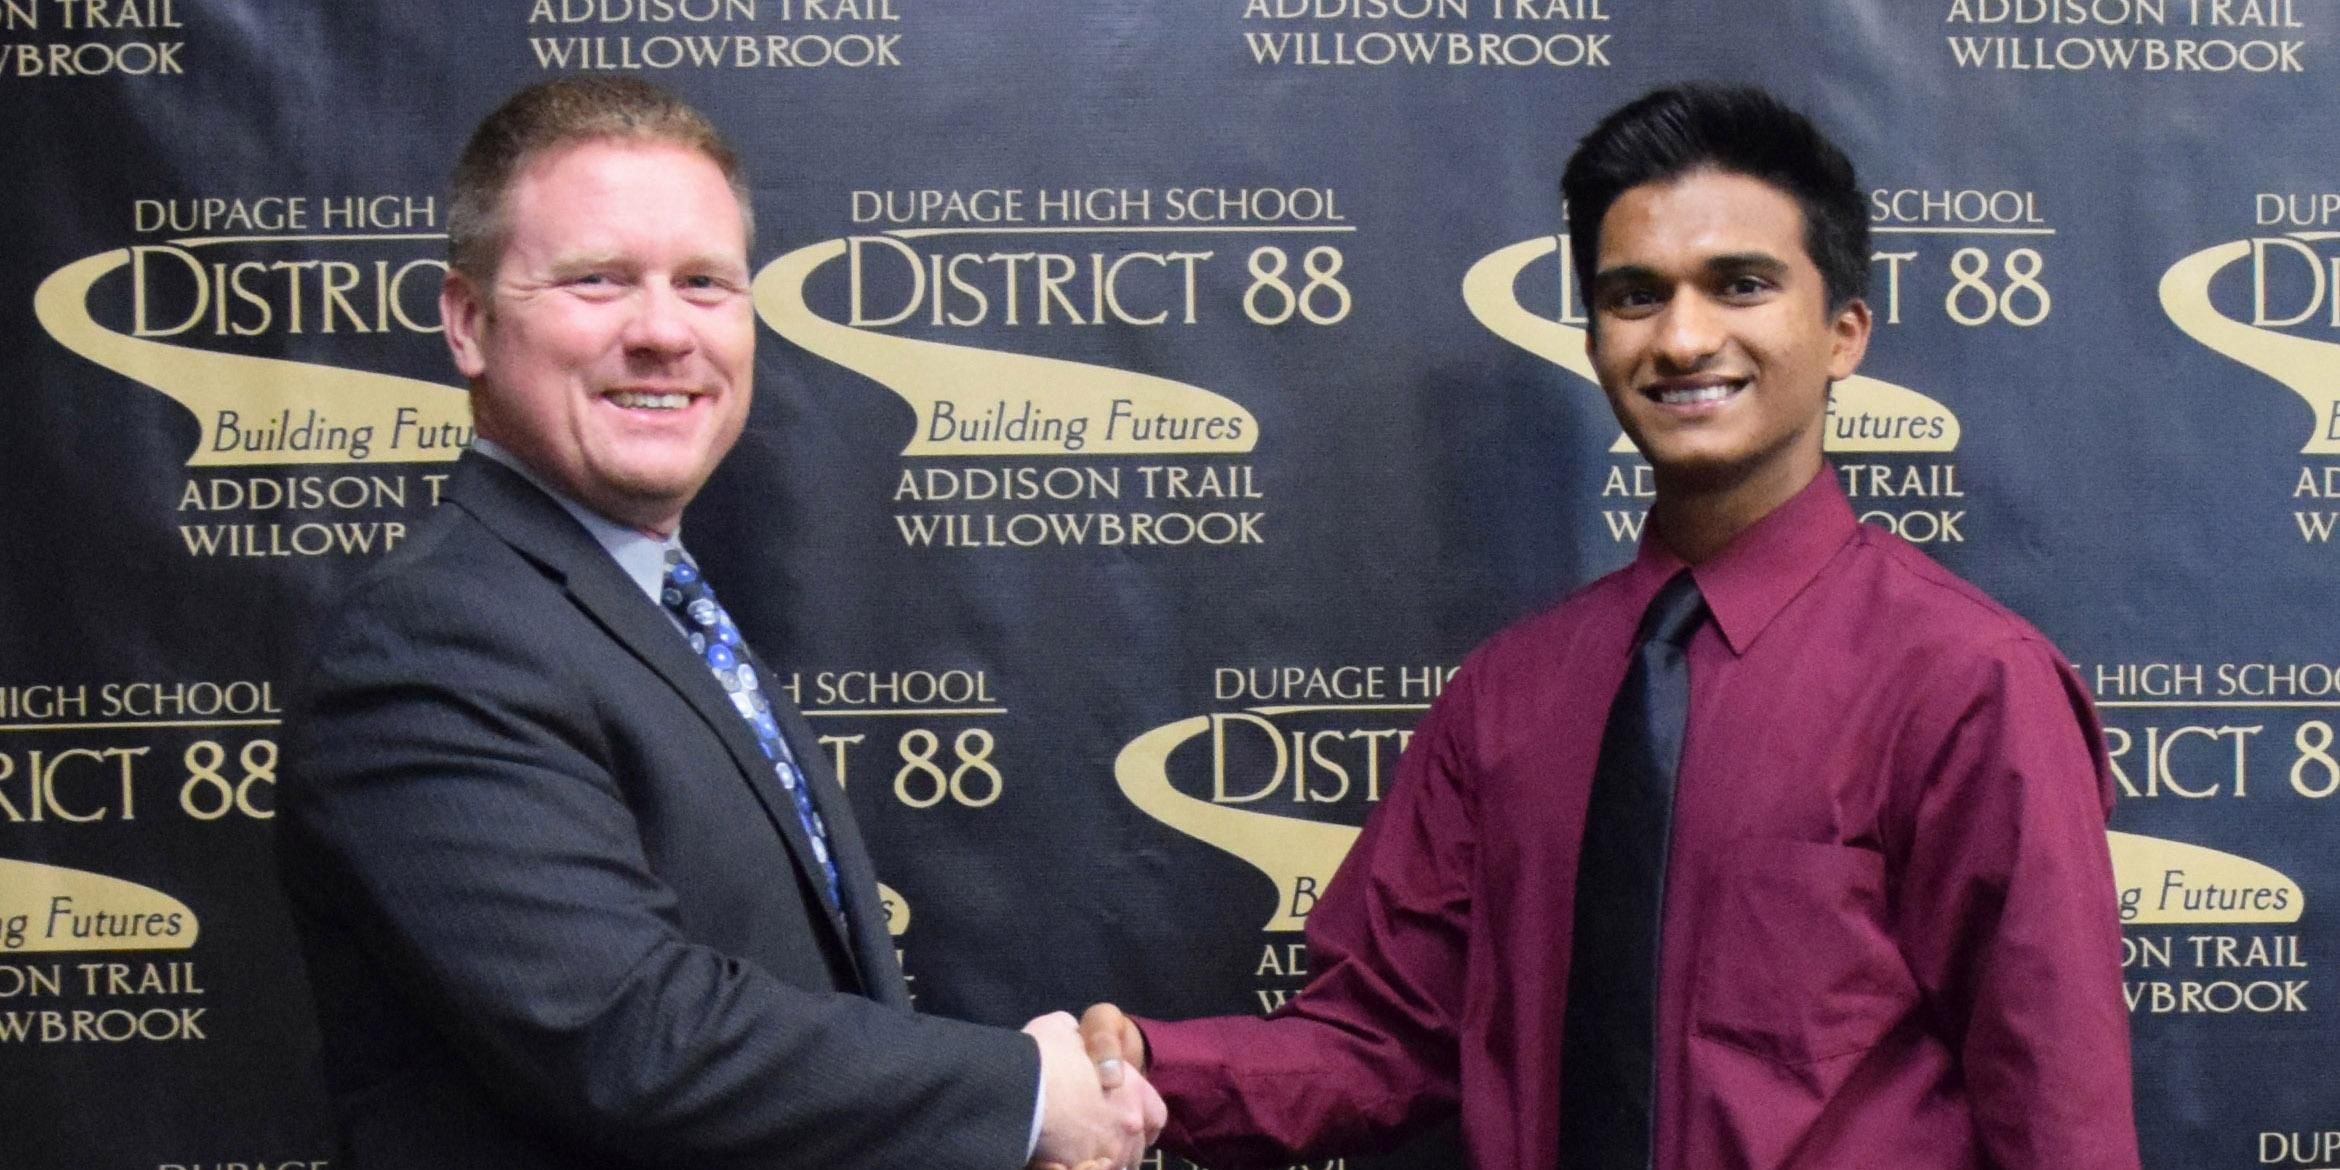 Willowbrook names October recipient of 88's Best recognition